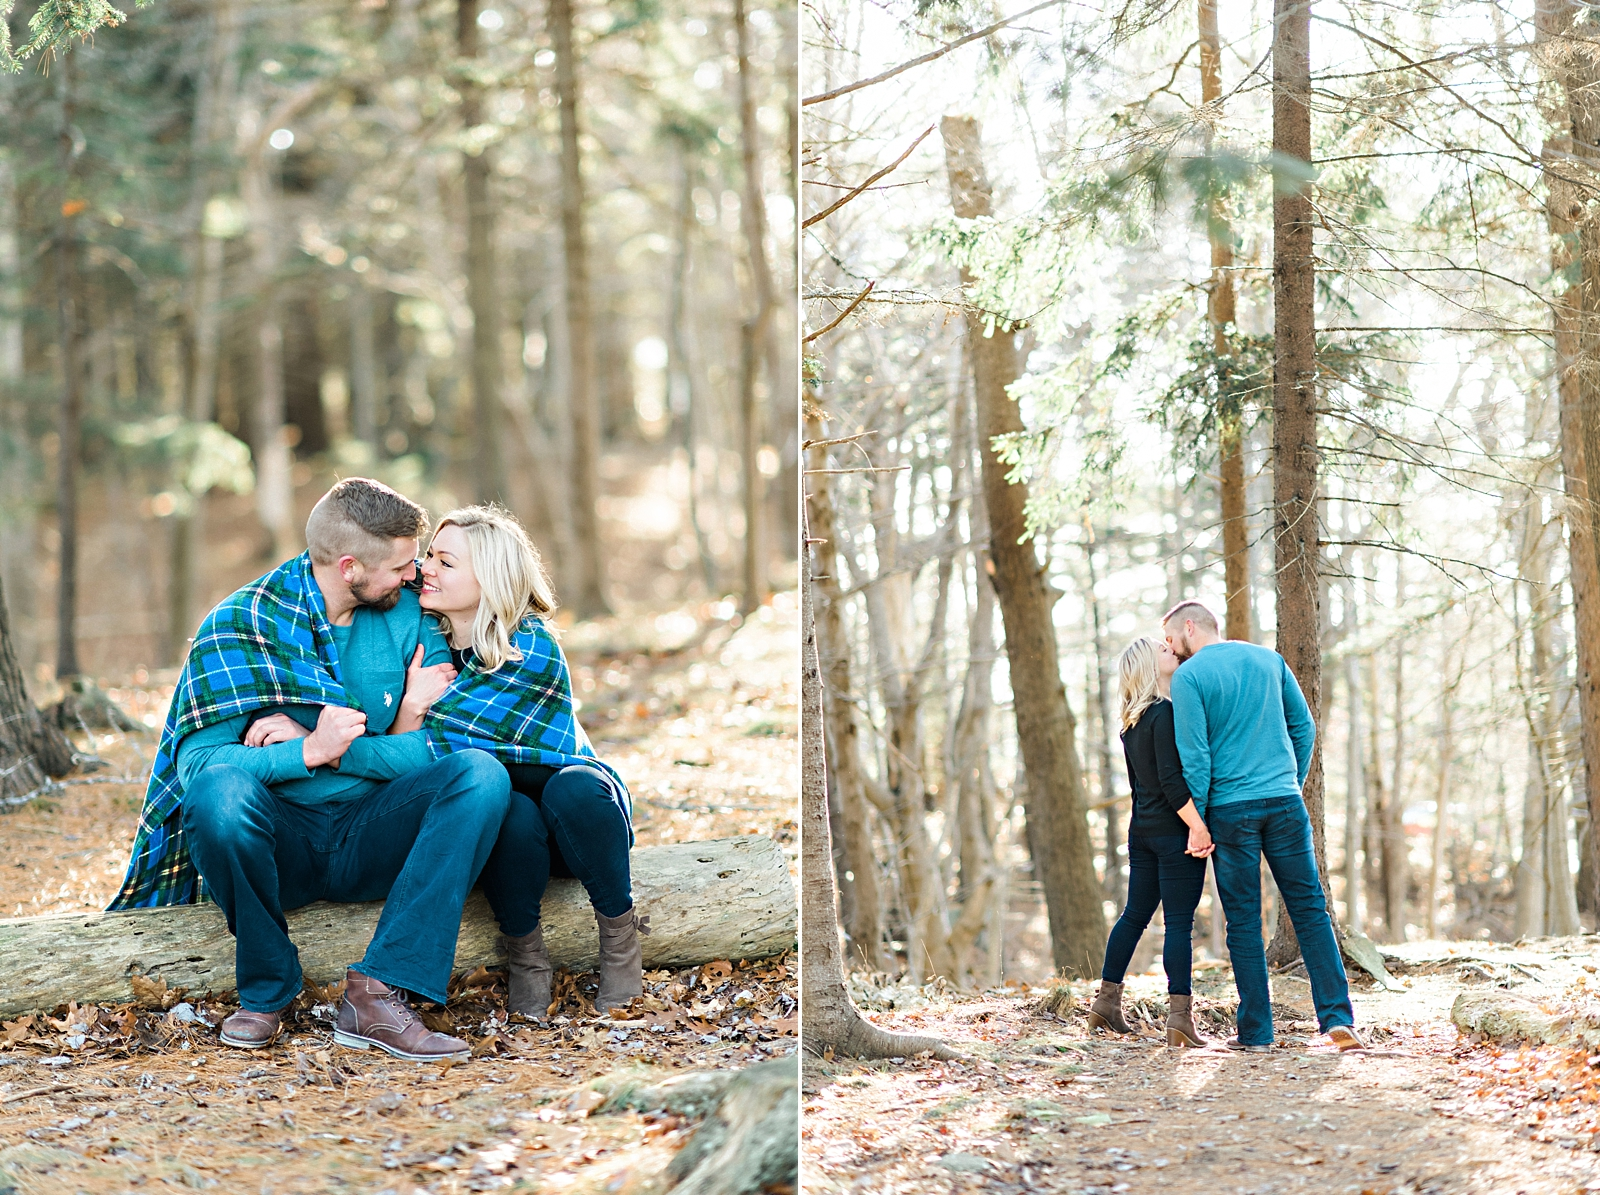 Halifax-Wedding-Photographer_Rhea&Craig_Halifax Engagement Photography_017.jpg